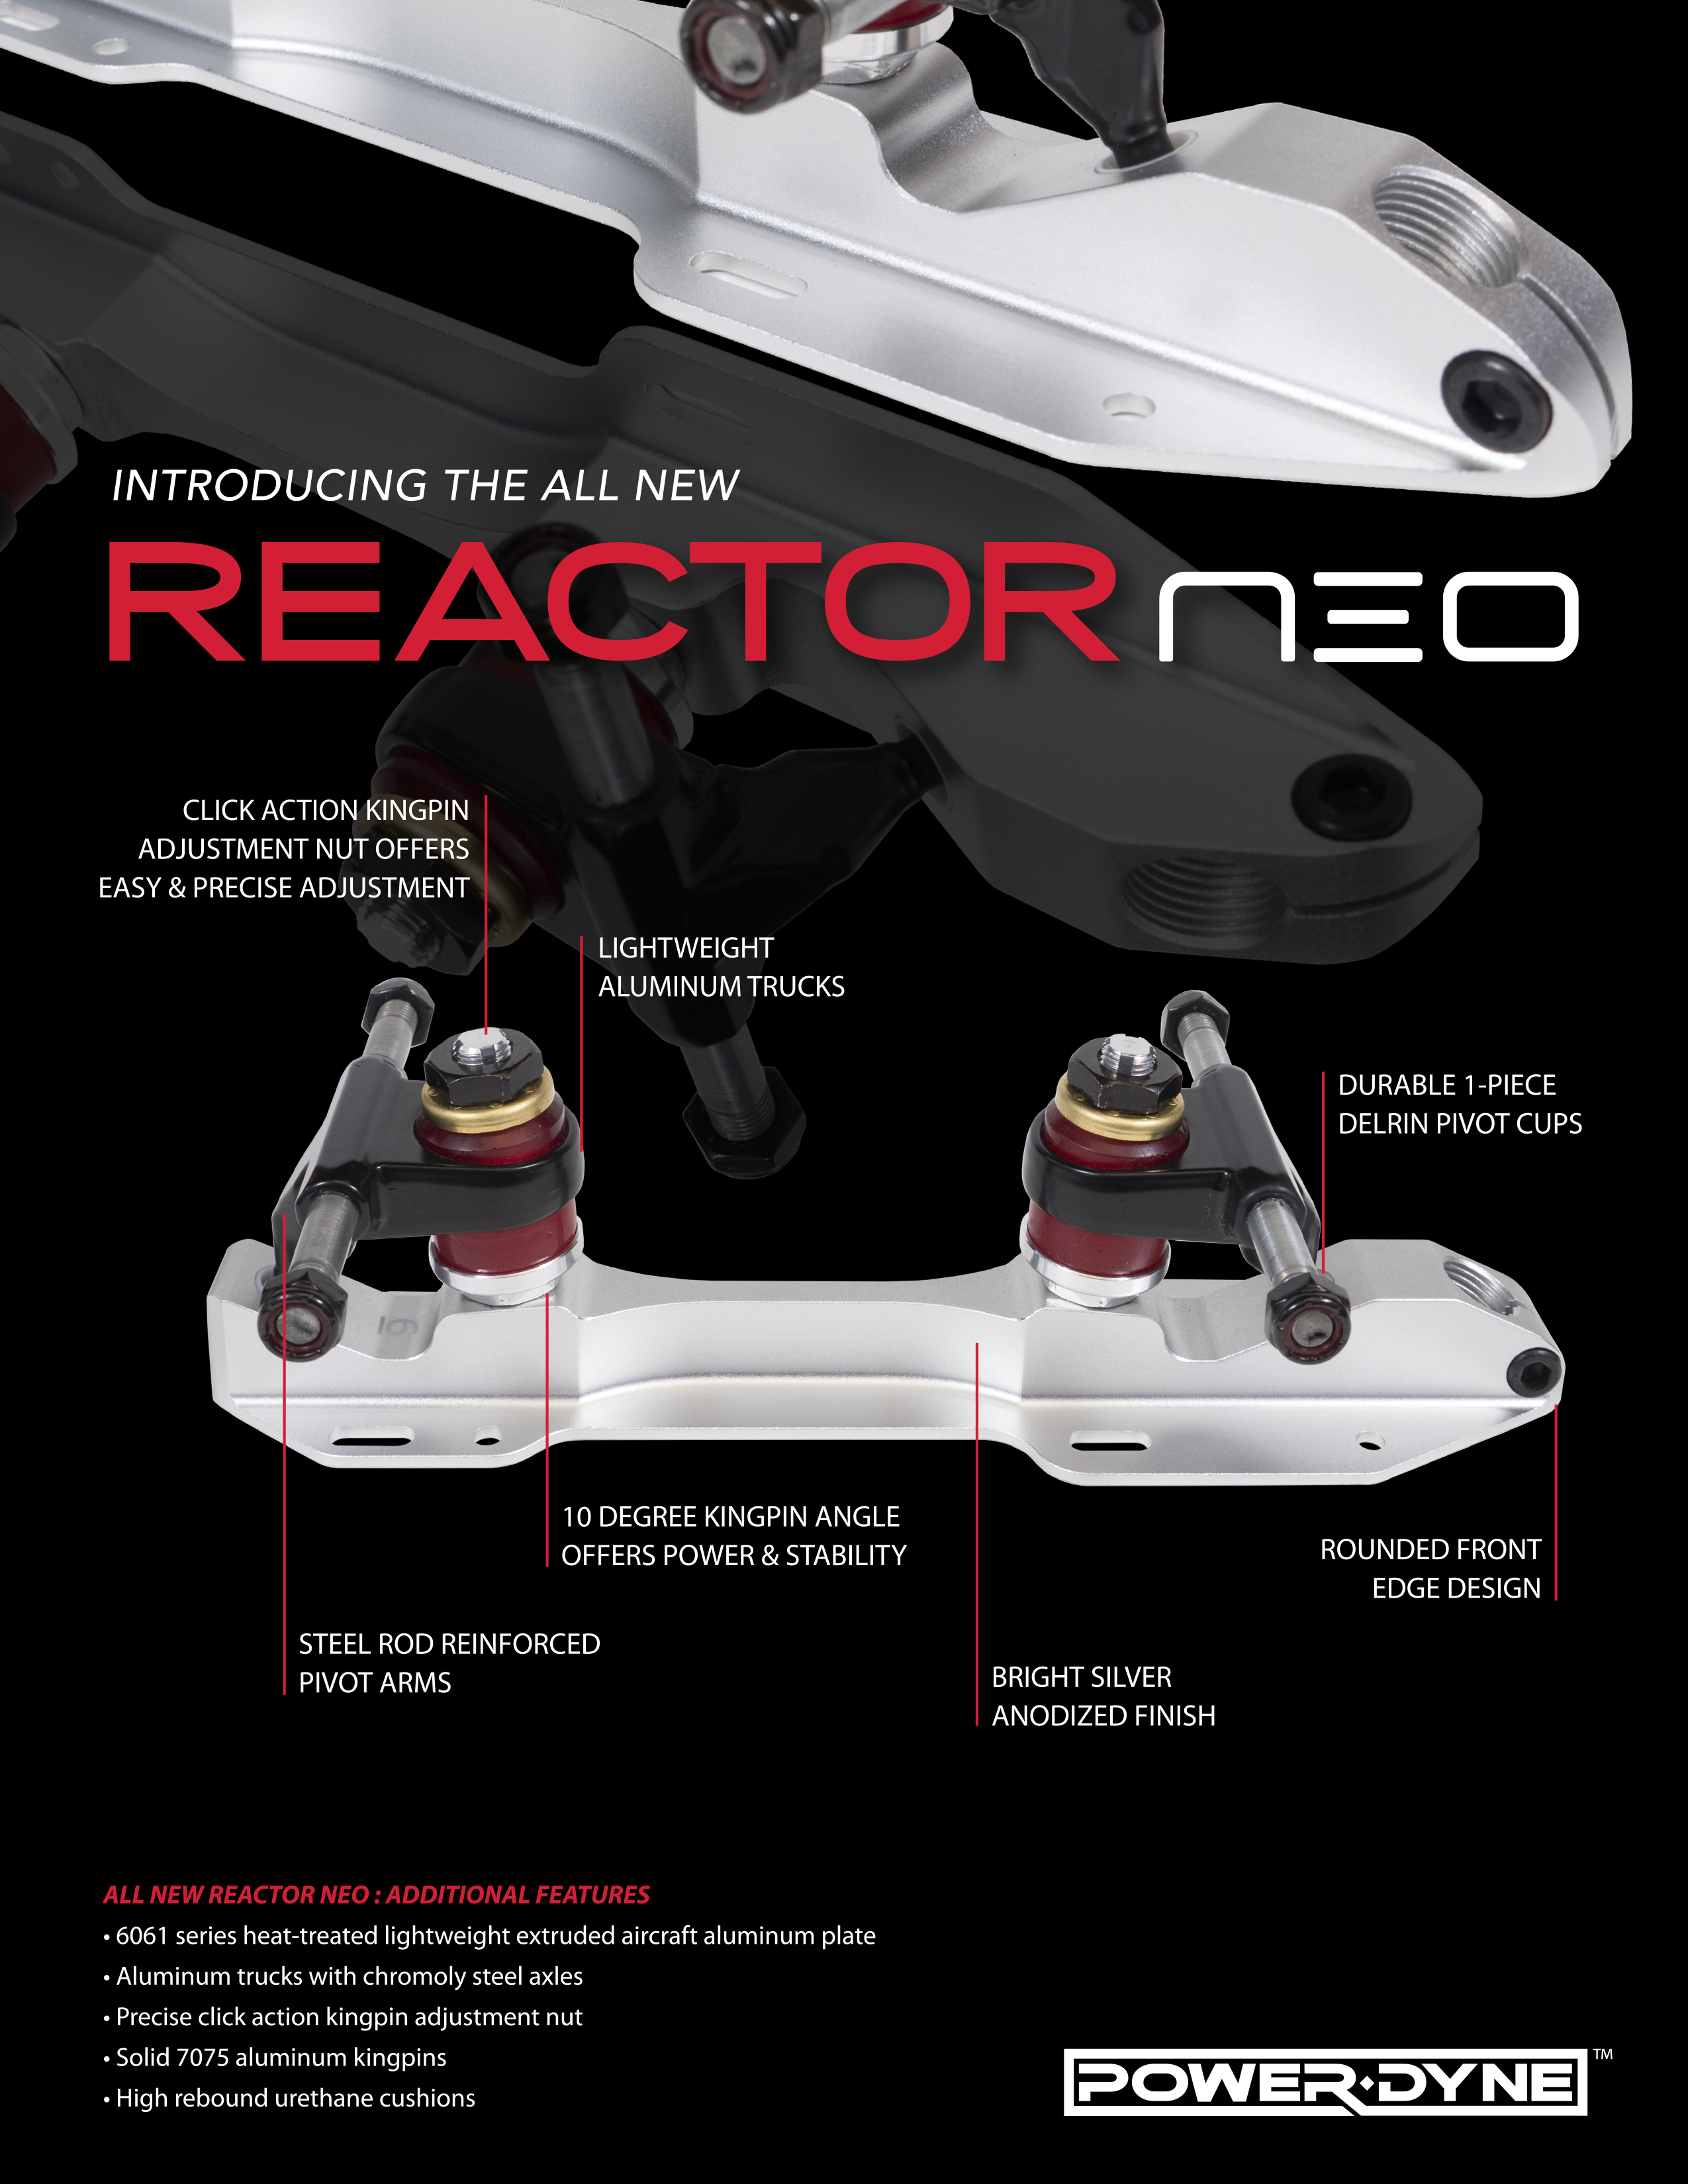 reactor-neo-infographic-fullpage.jpg